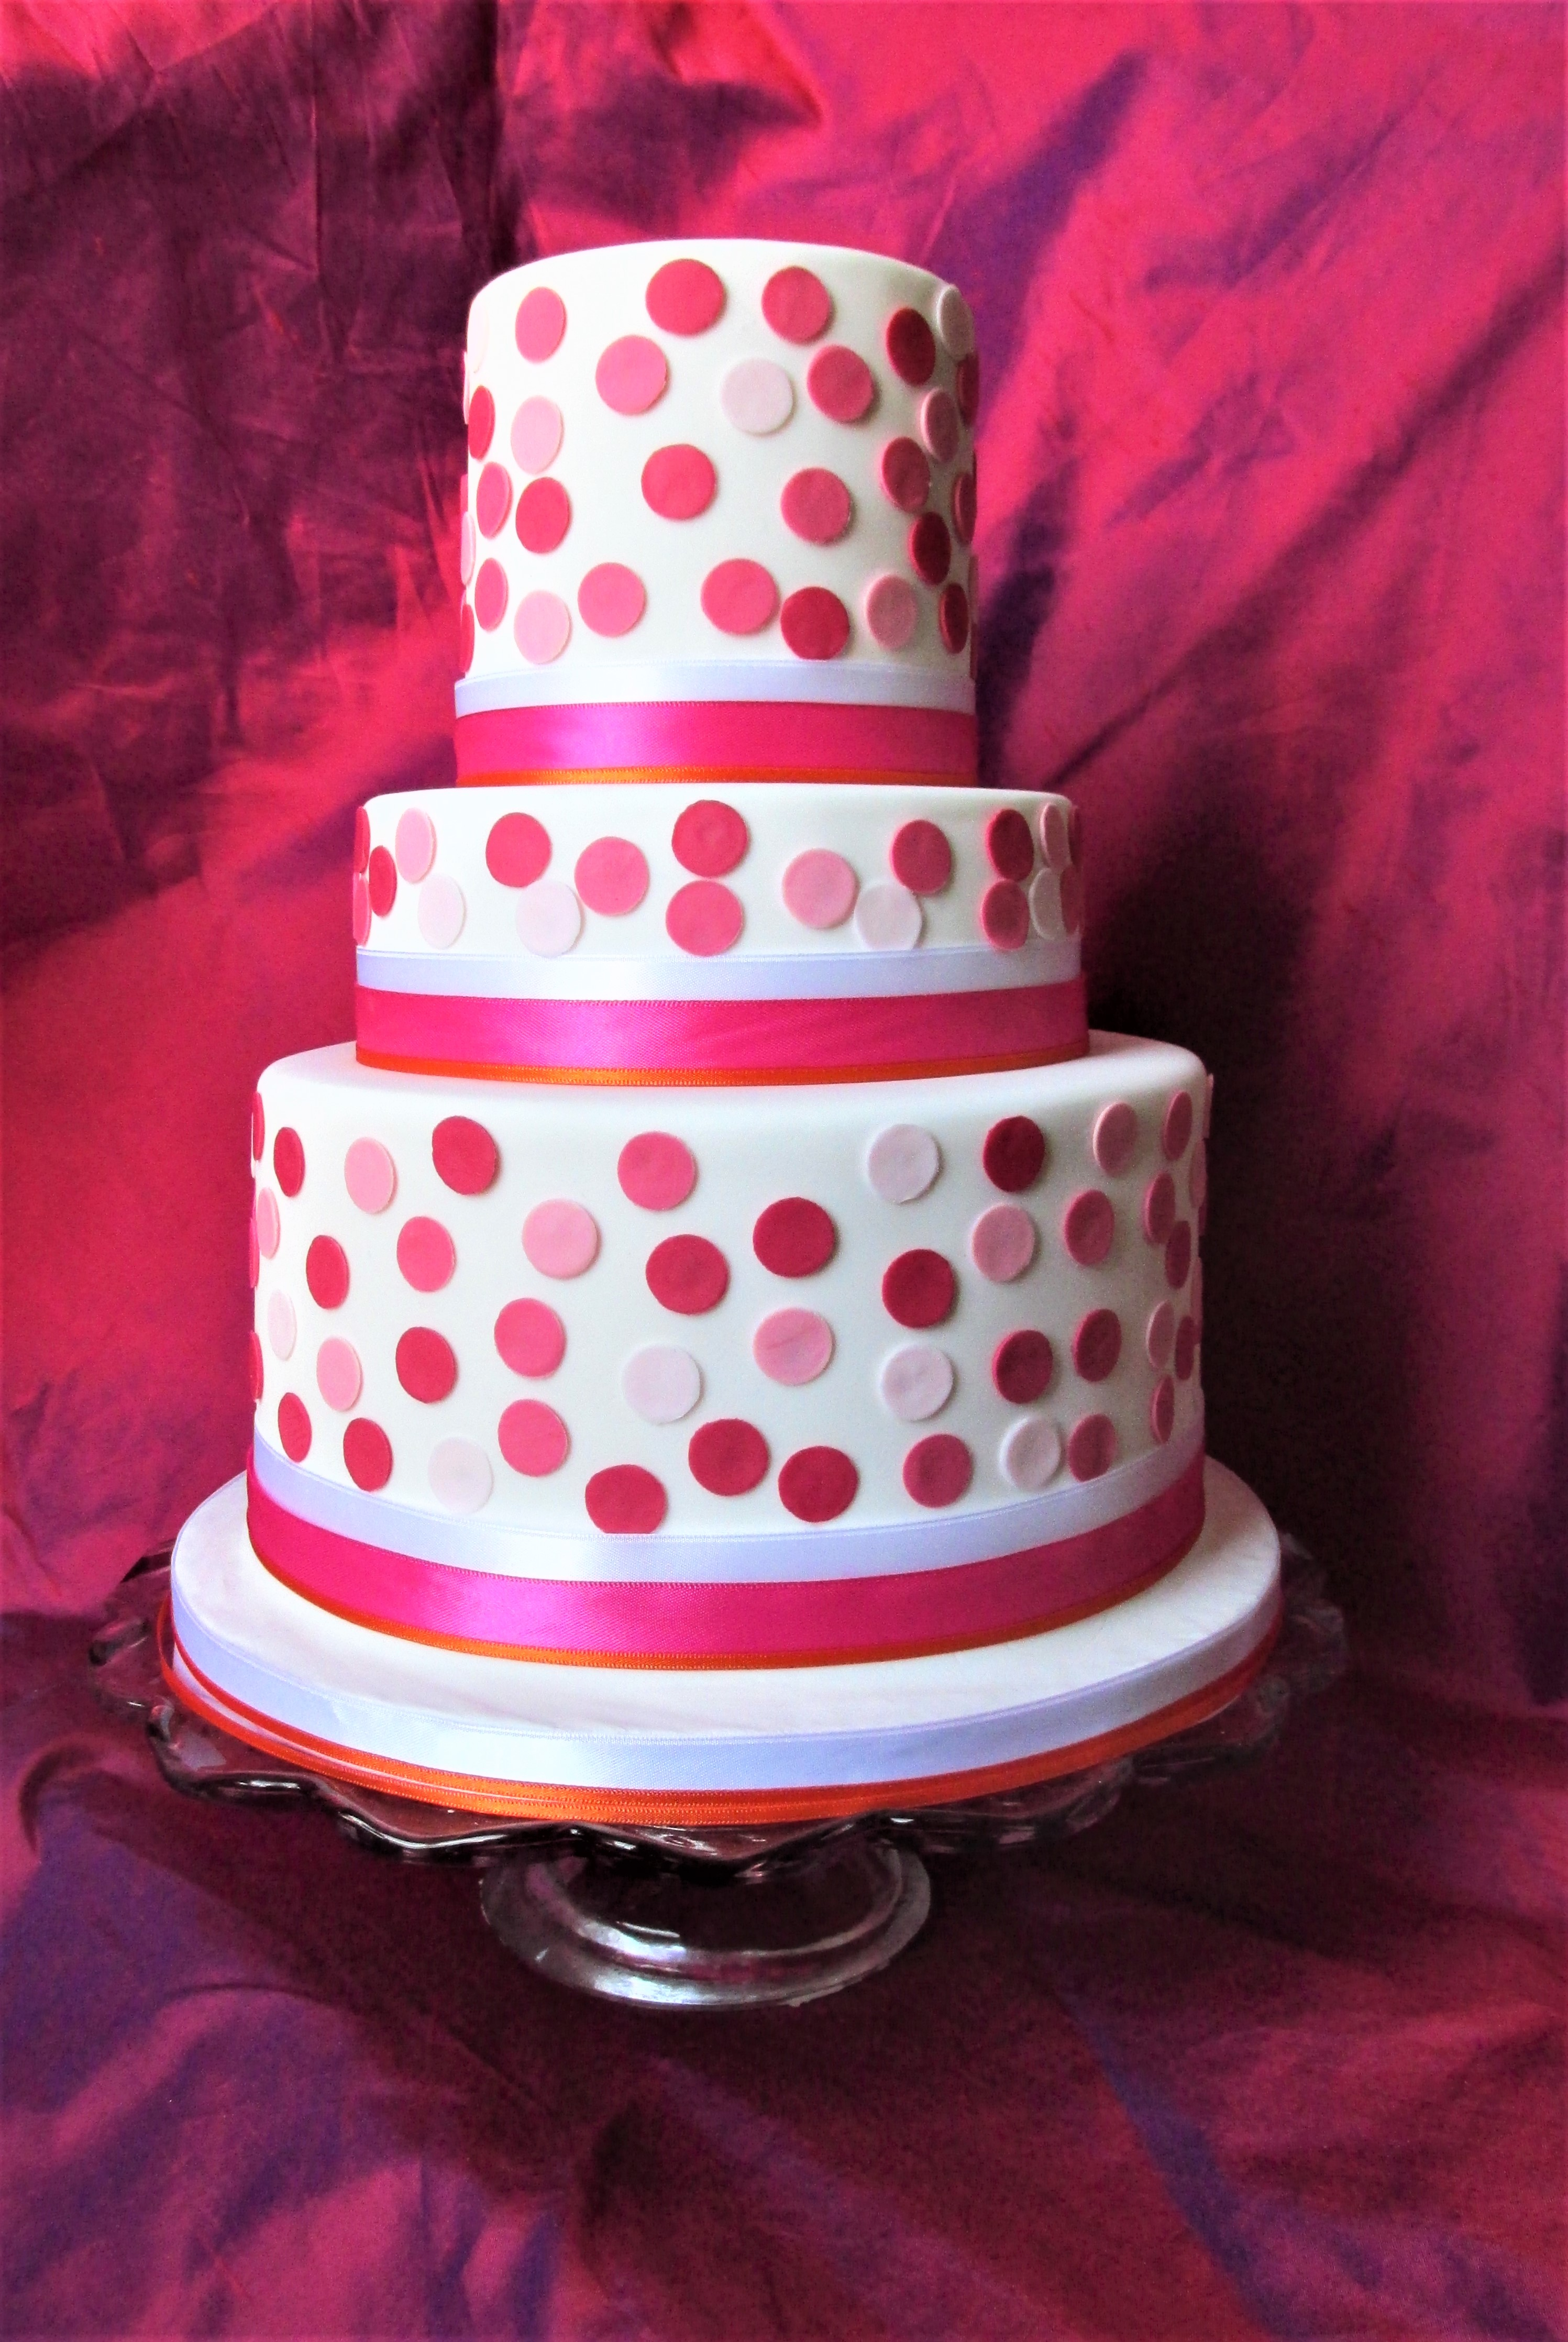 Tiered party cake with pink spots and ribbons